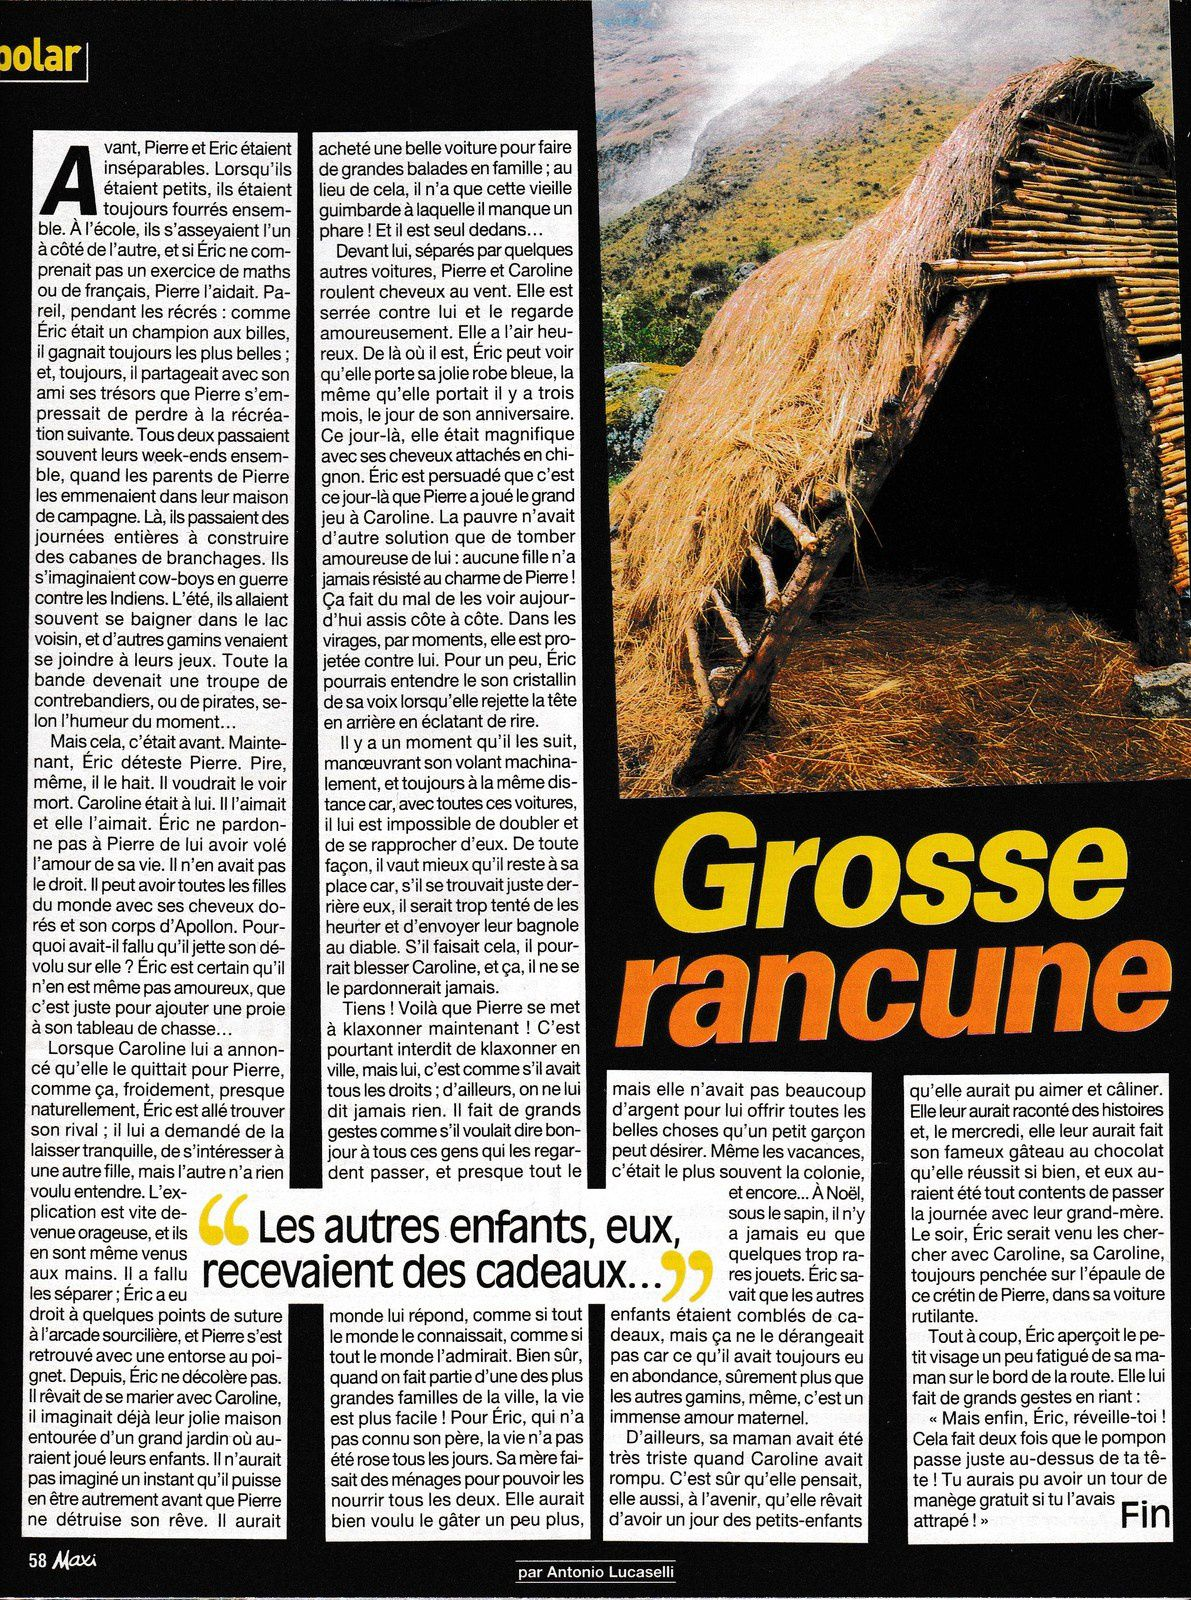 lecture : Grosse rancune